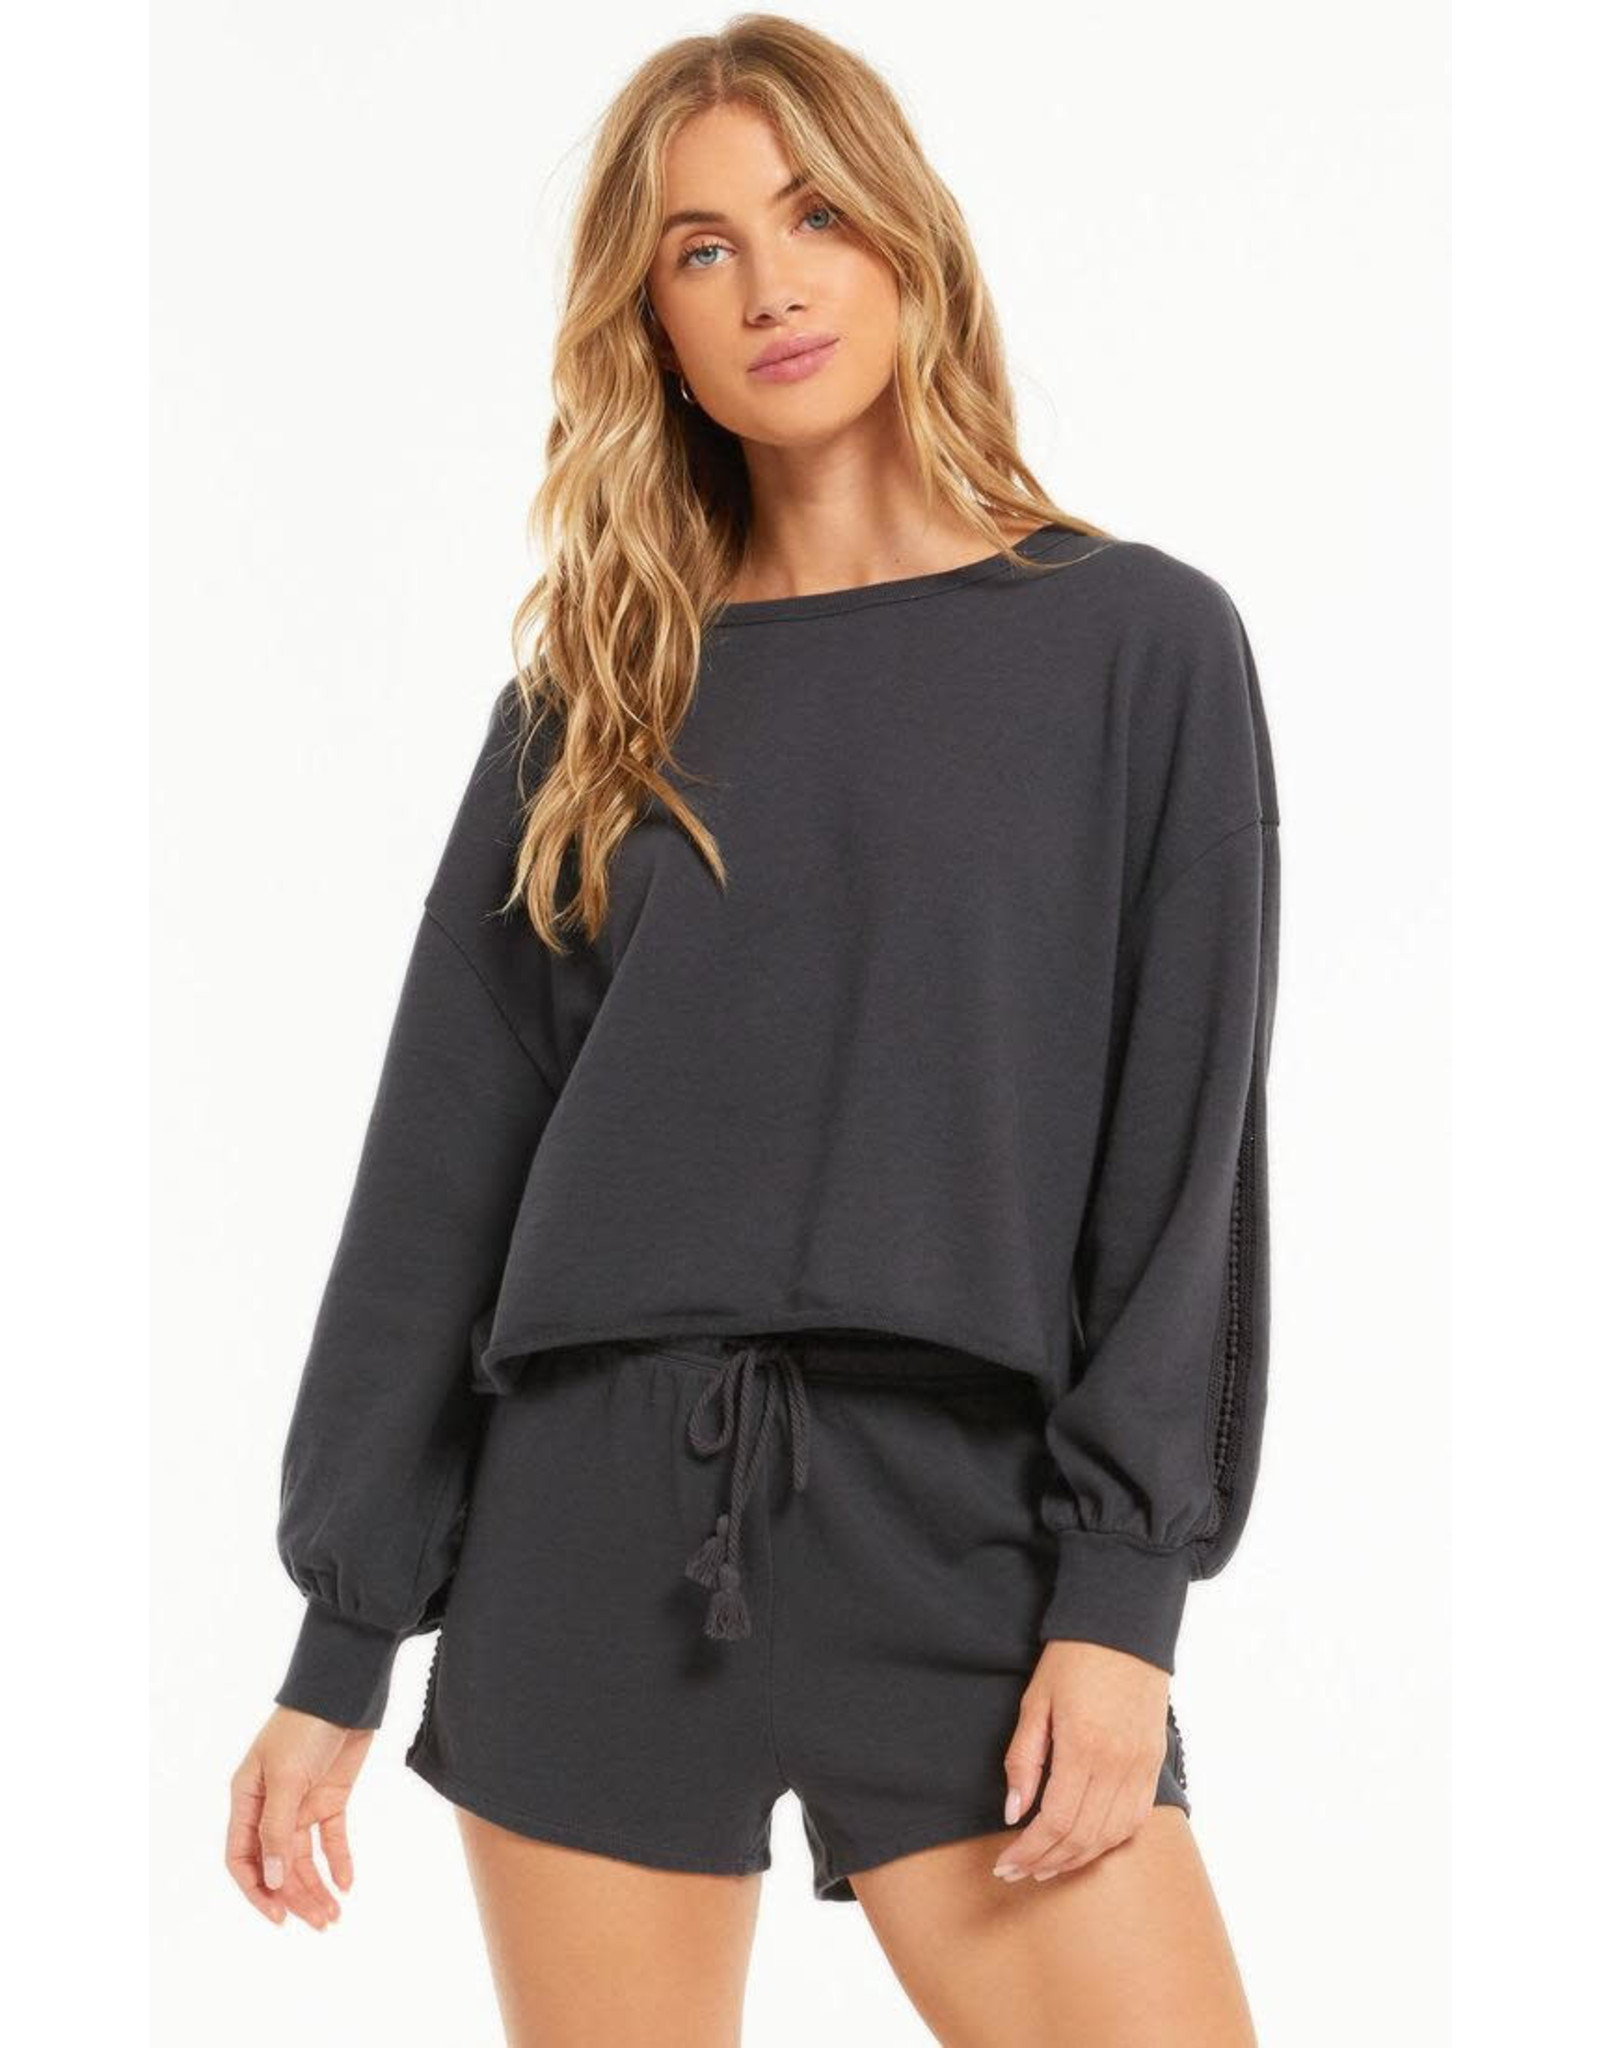 Z supply ZS High Tide Terry L/S Top